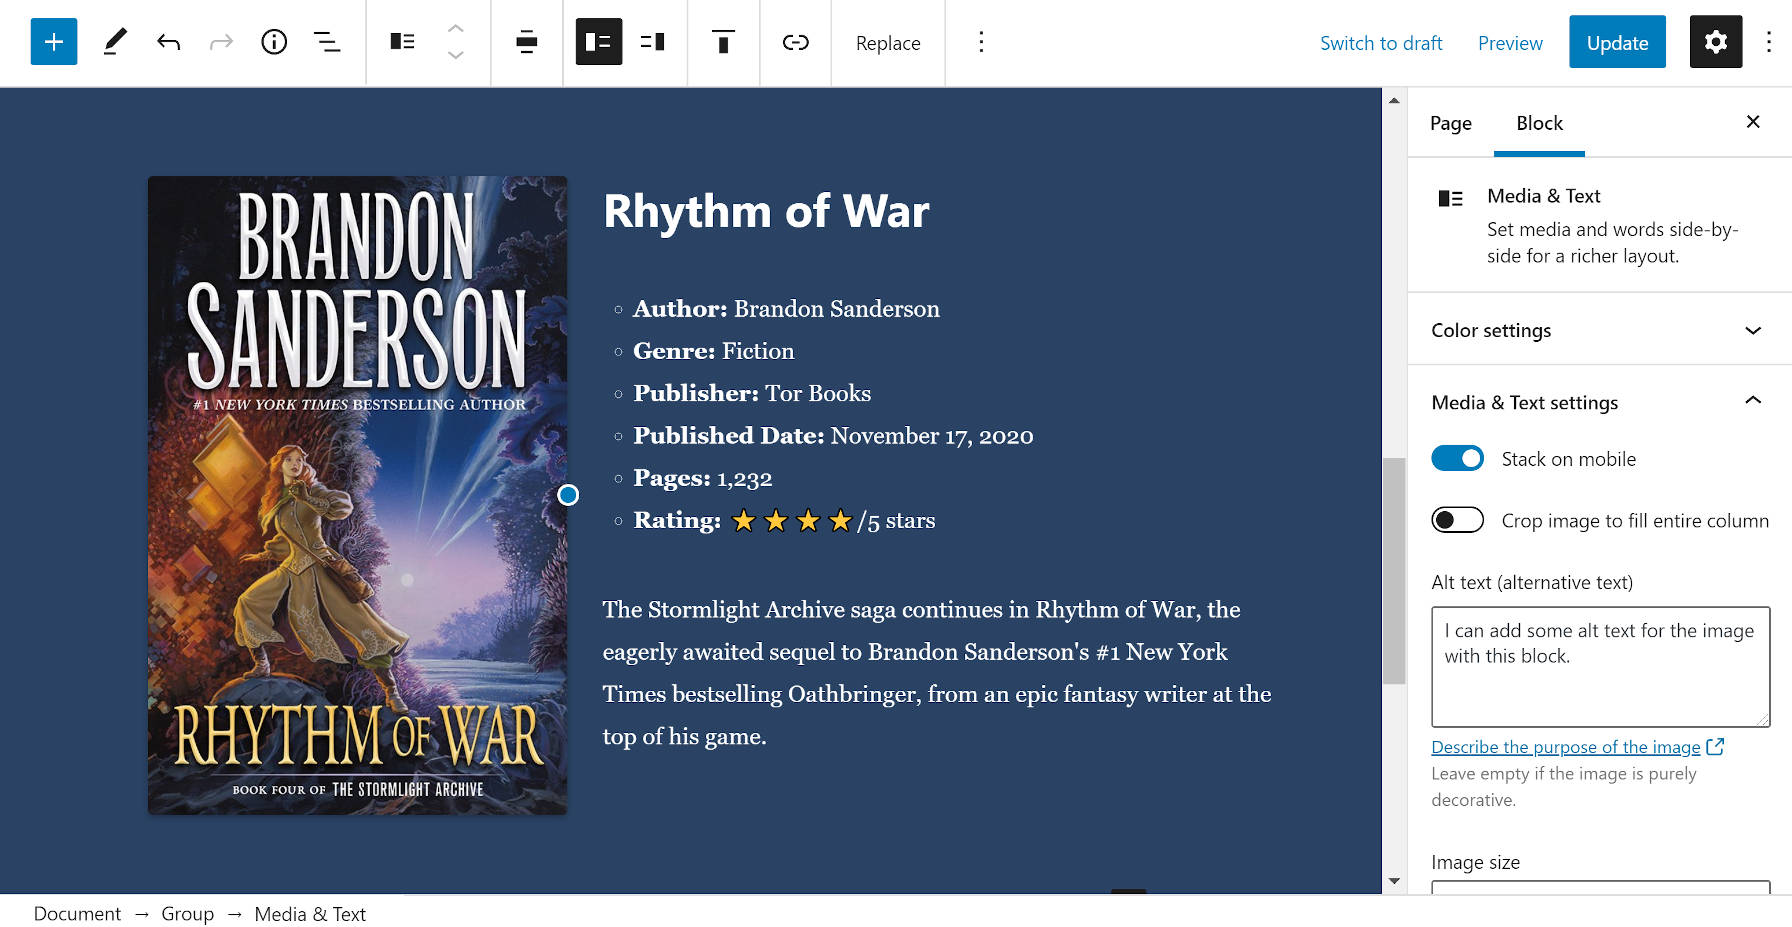 Creating a book review section with the Media & Text block in the editor.